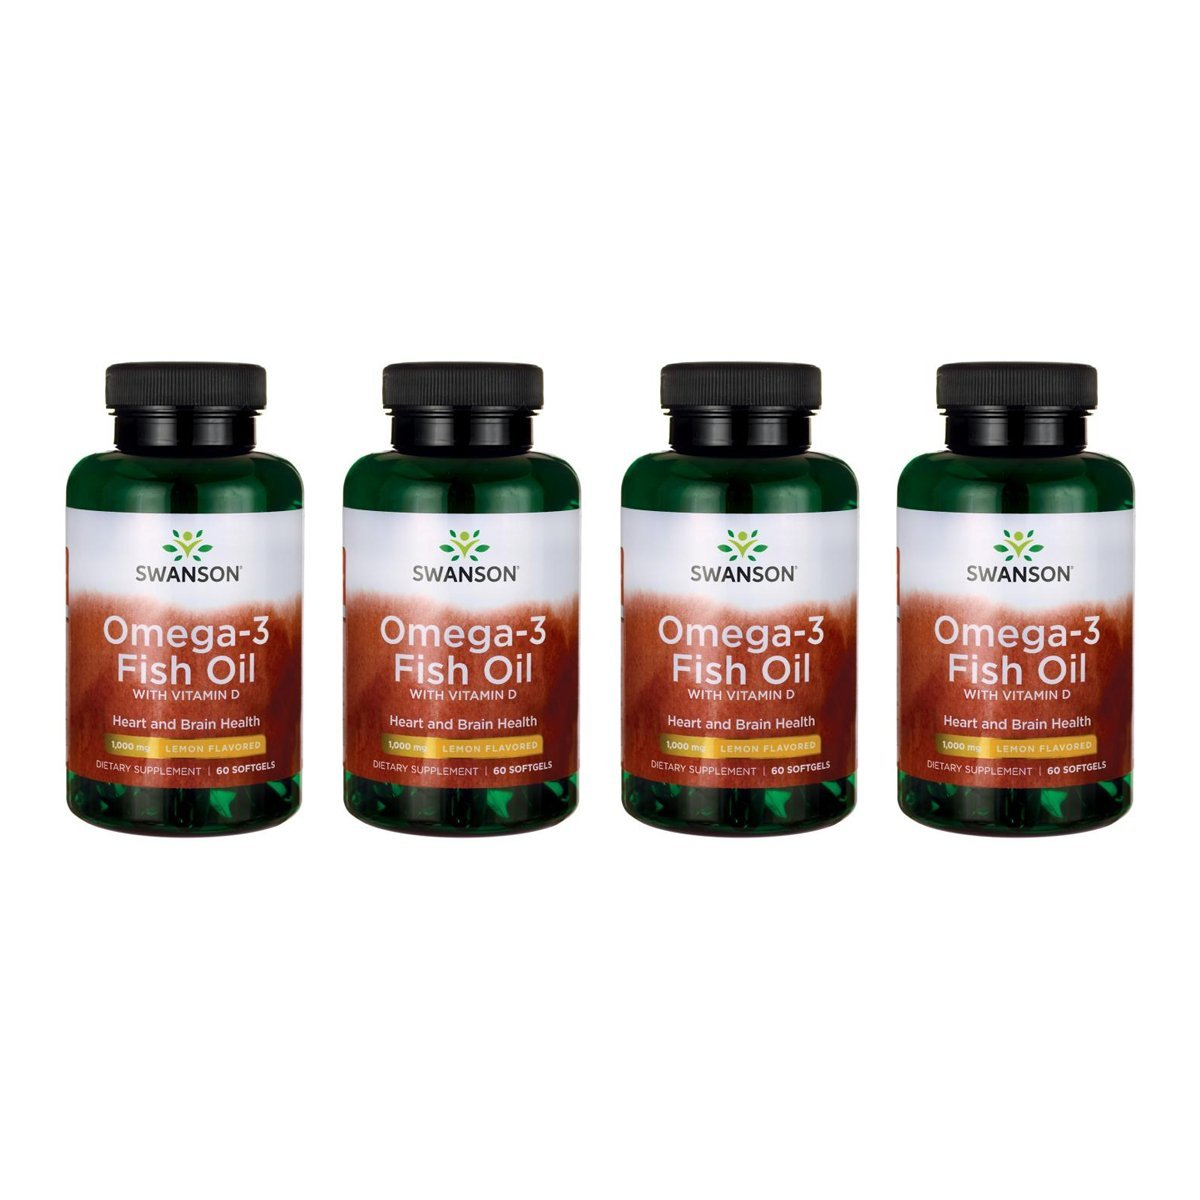 Amazon.com: Swanson Omega-3 Fish Oil with Vitamin D - Lemon Flavored 1,000 mg 60 Sgels 2 Pack: Health & Personal Care